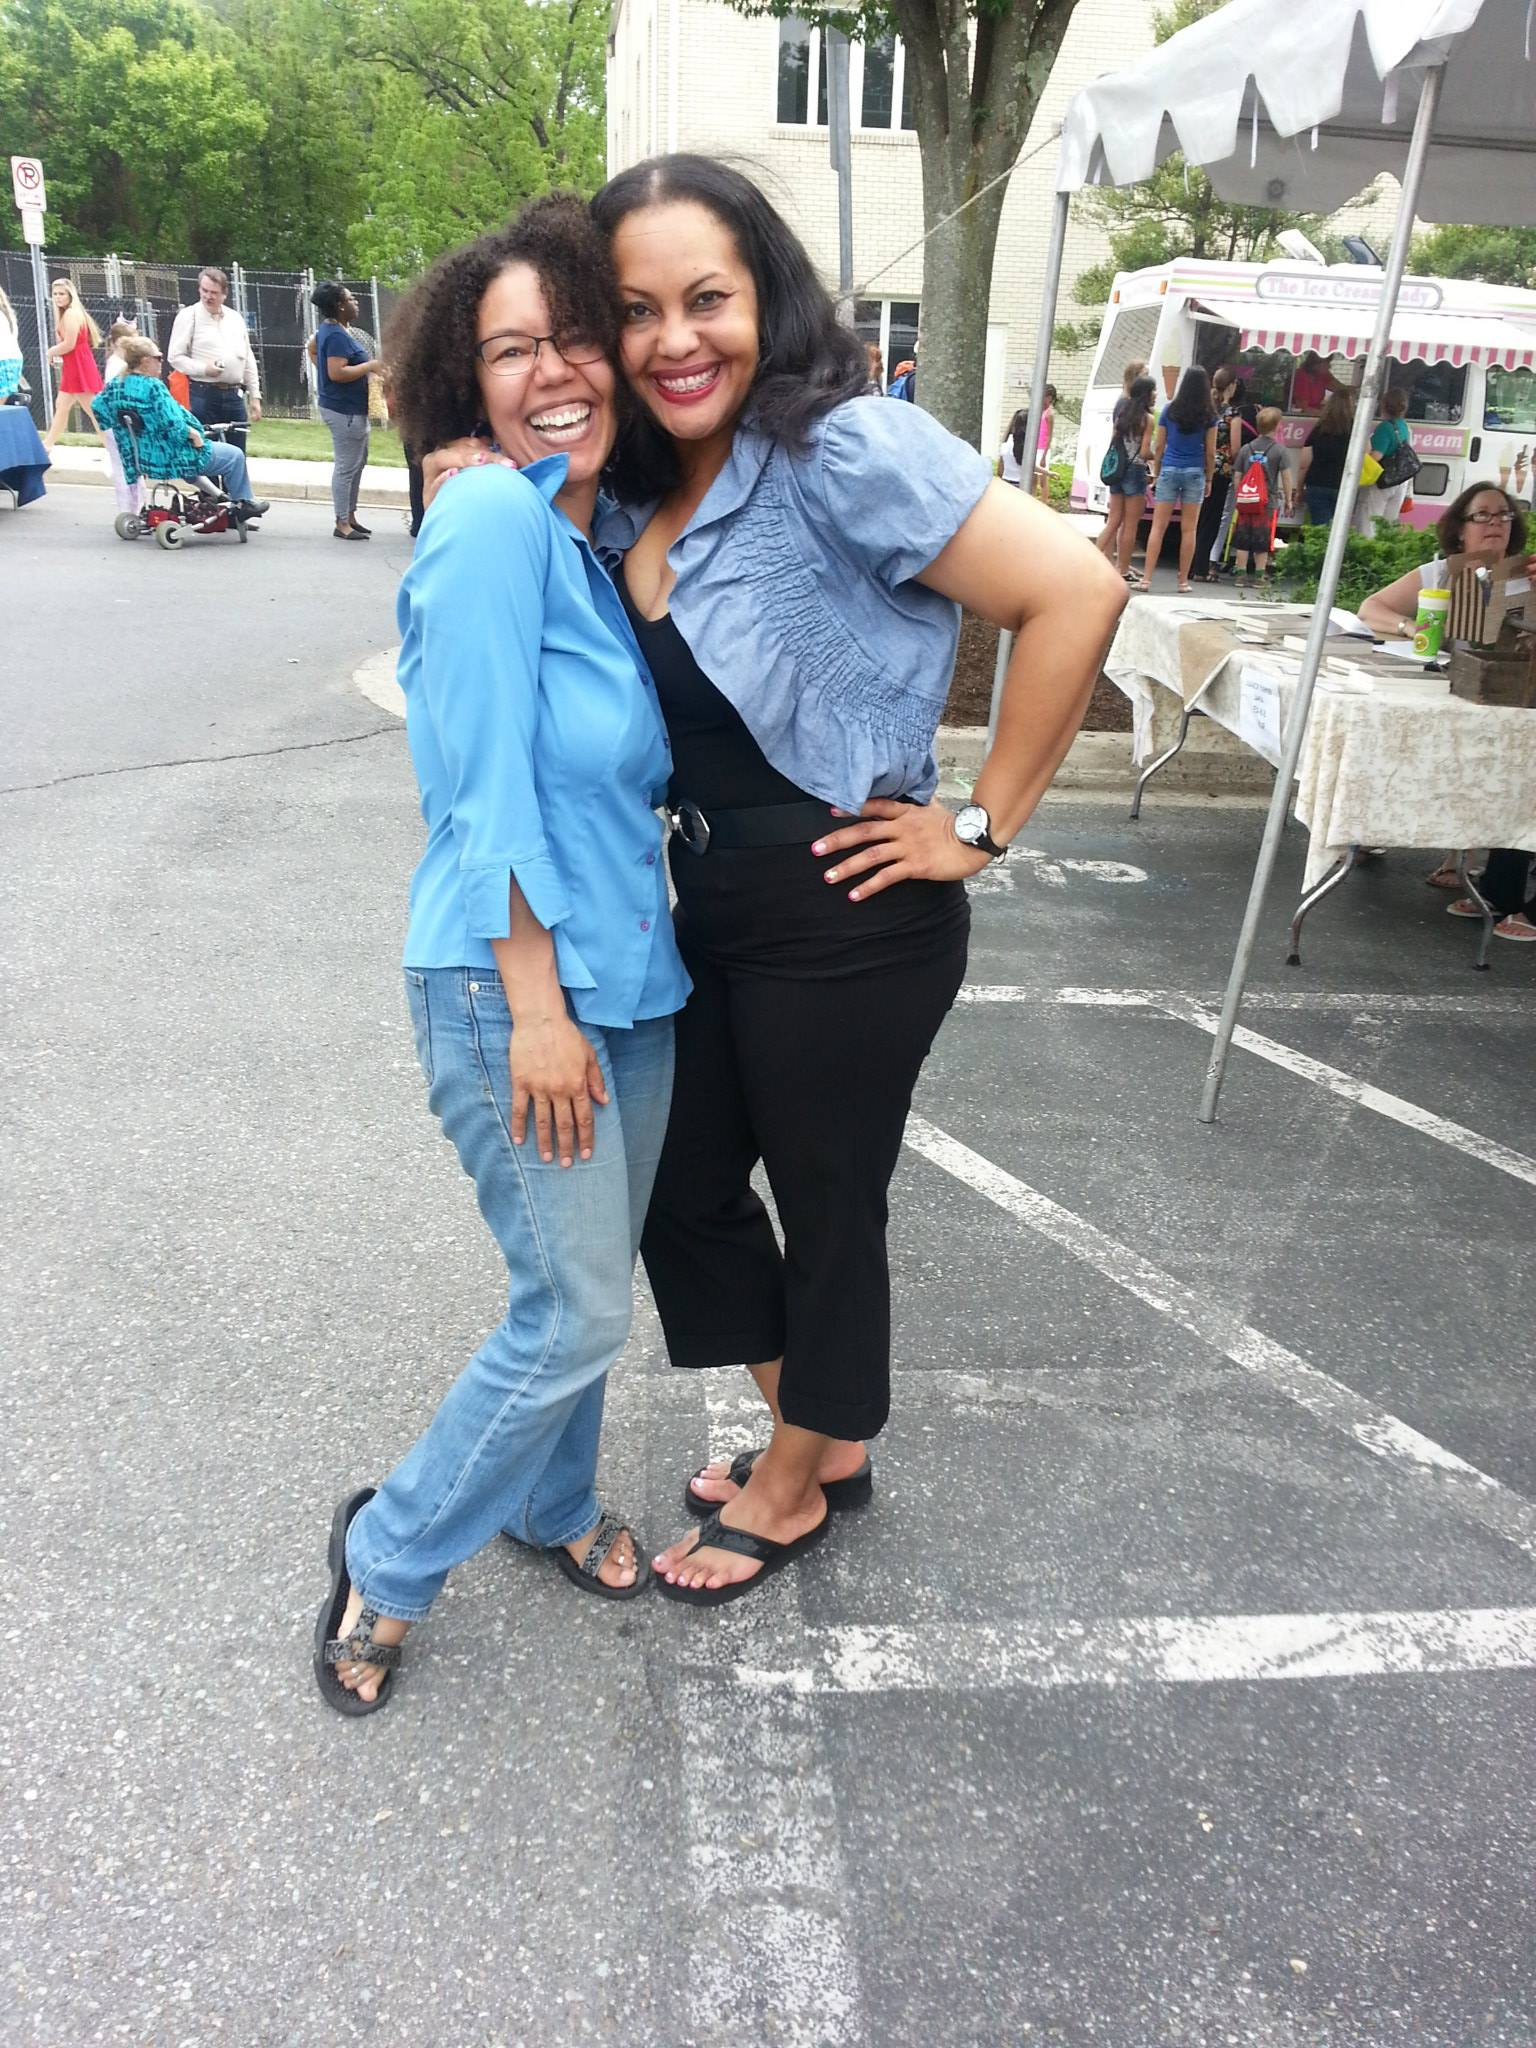 Me and Dee at the Gaithersburg Book Festival earlier this year.